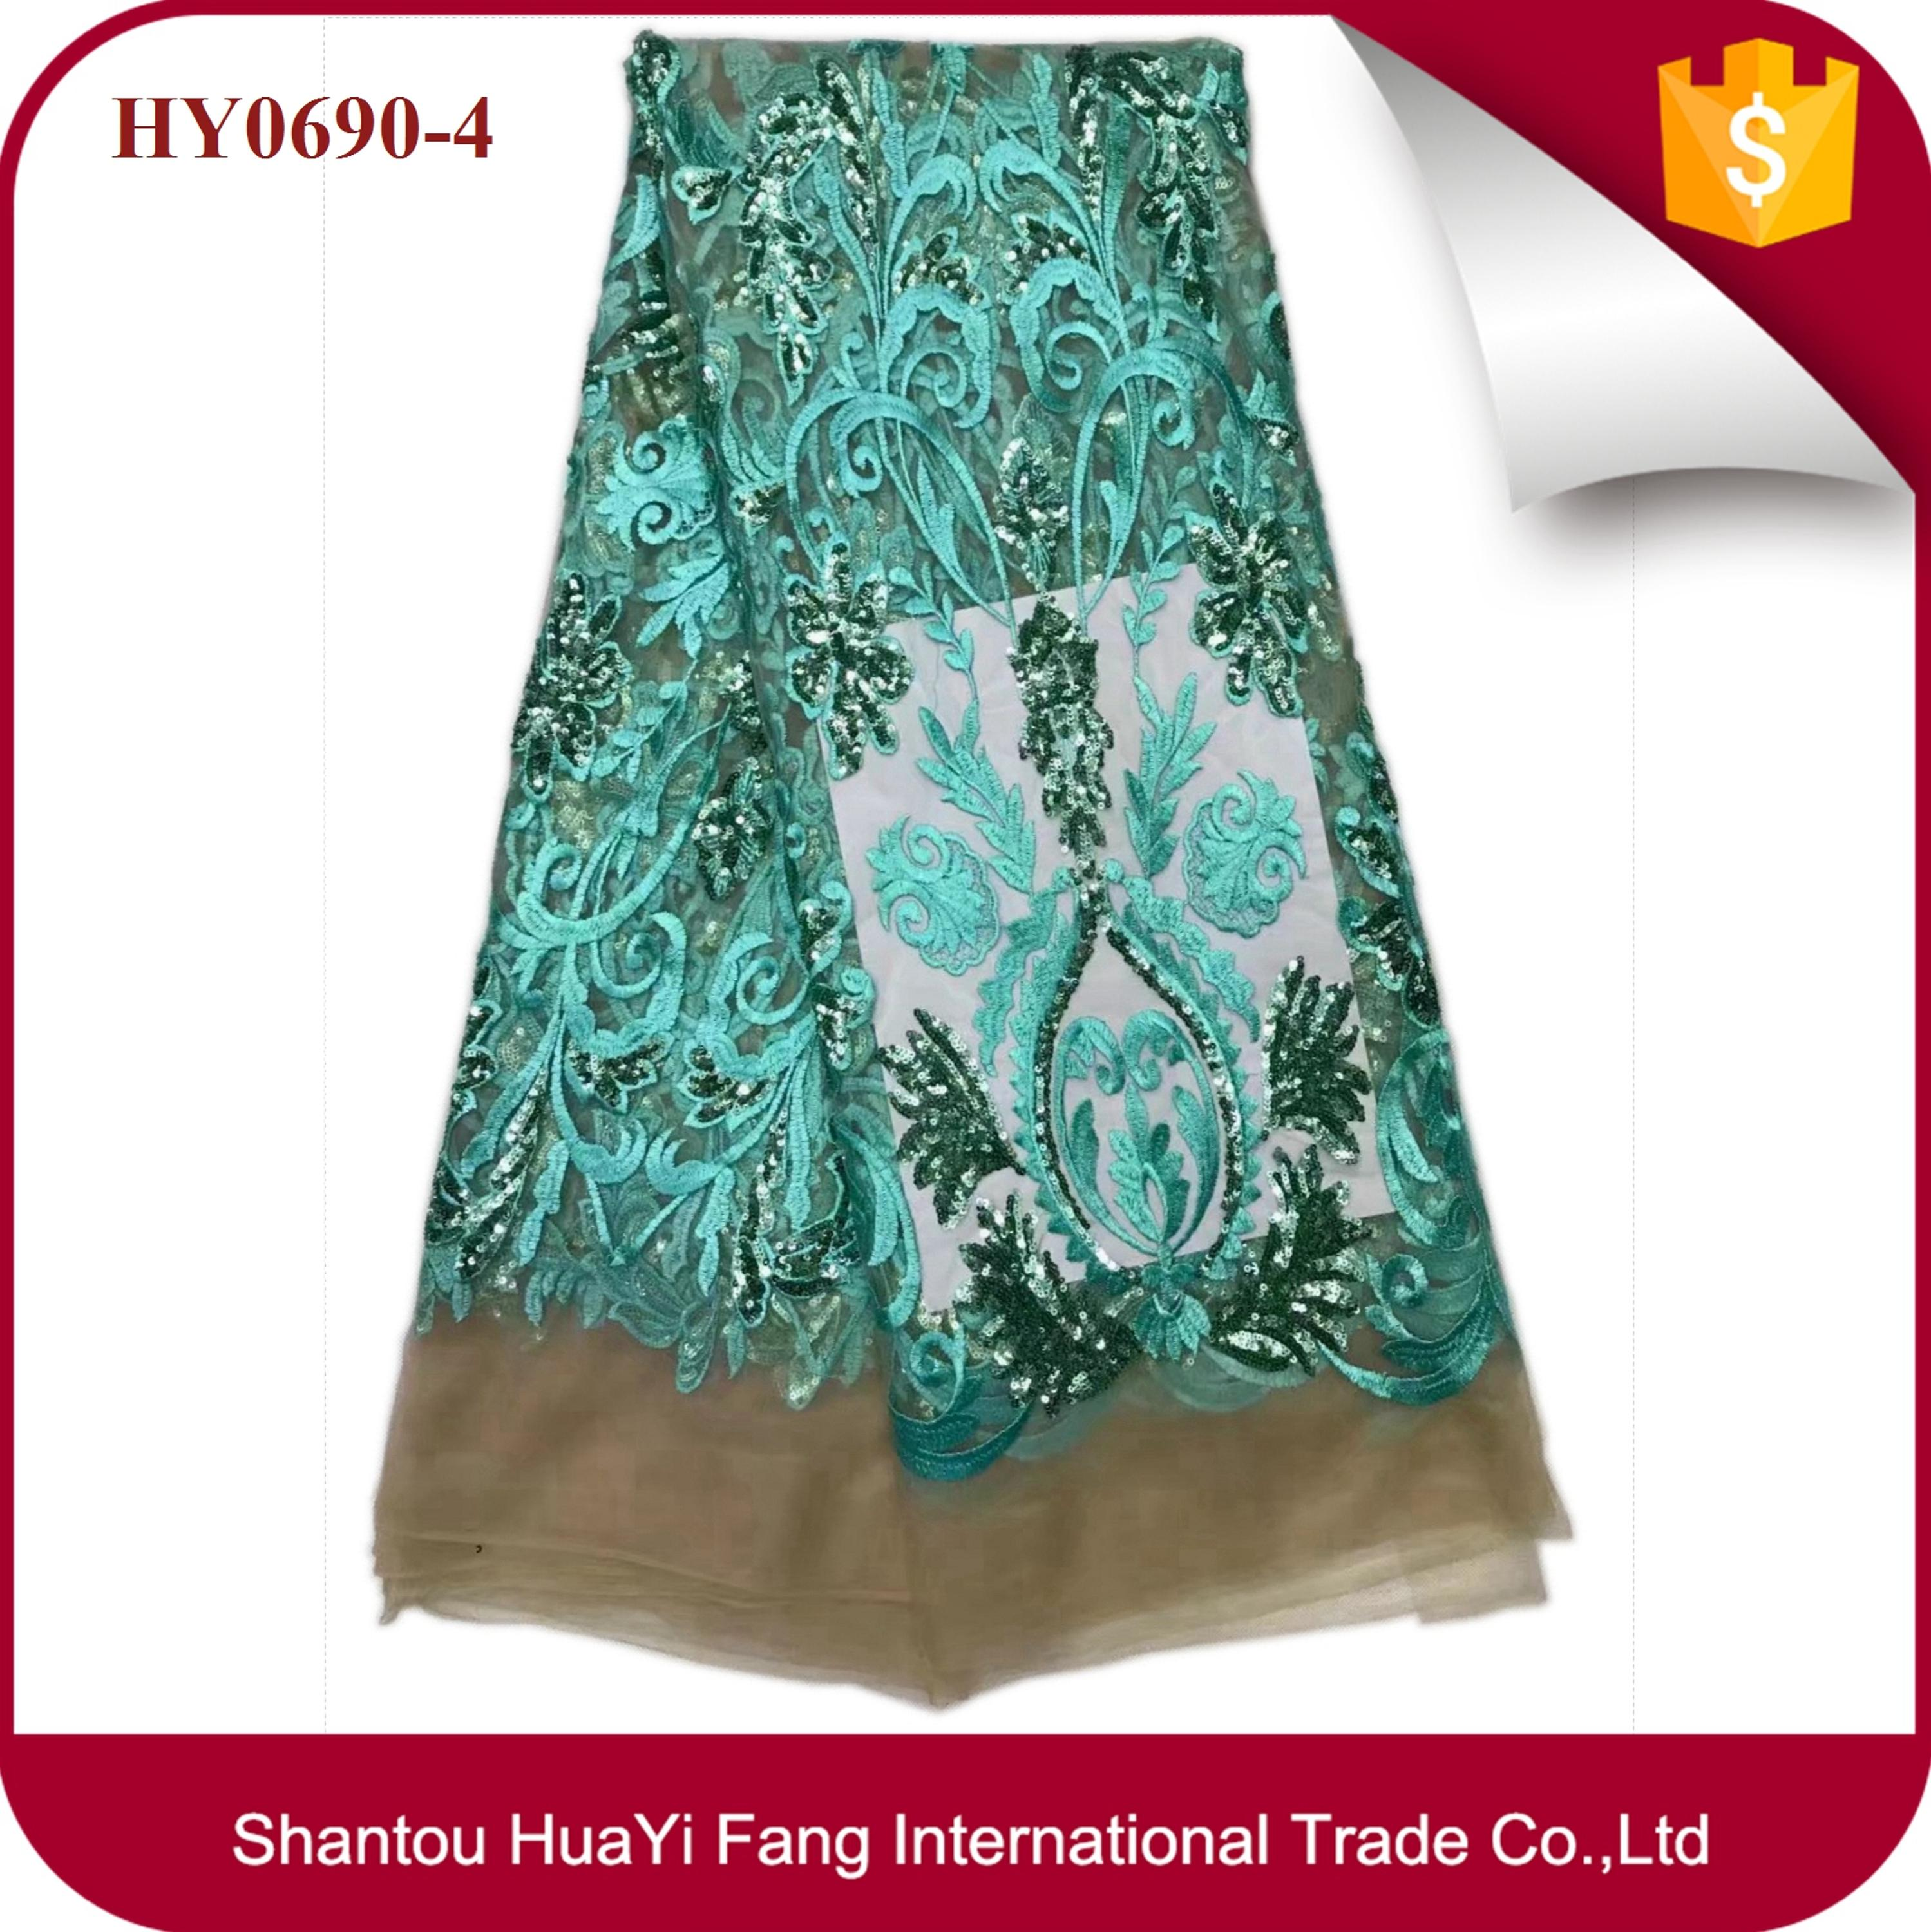 Latest fashion african sequins lace high quality polyester embroidery tulle lace fabric HY0690-4